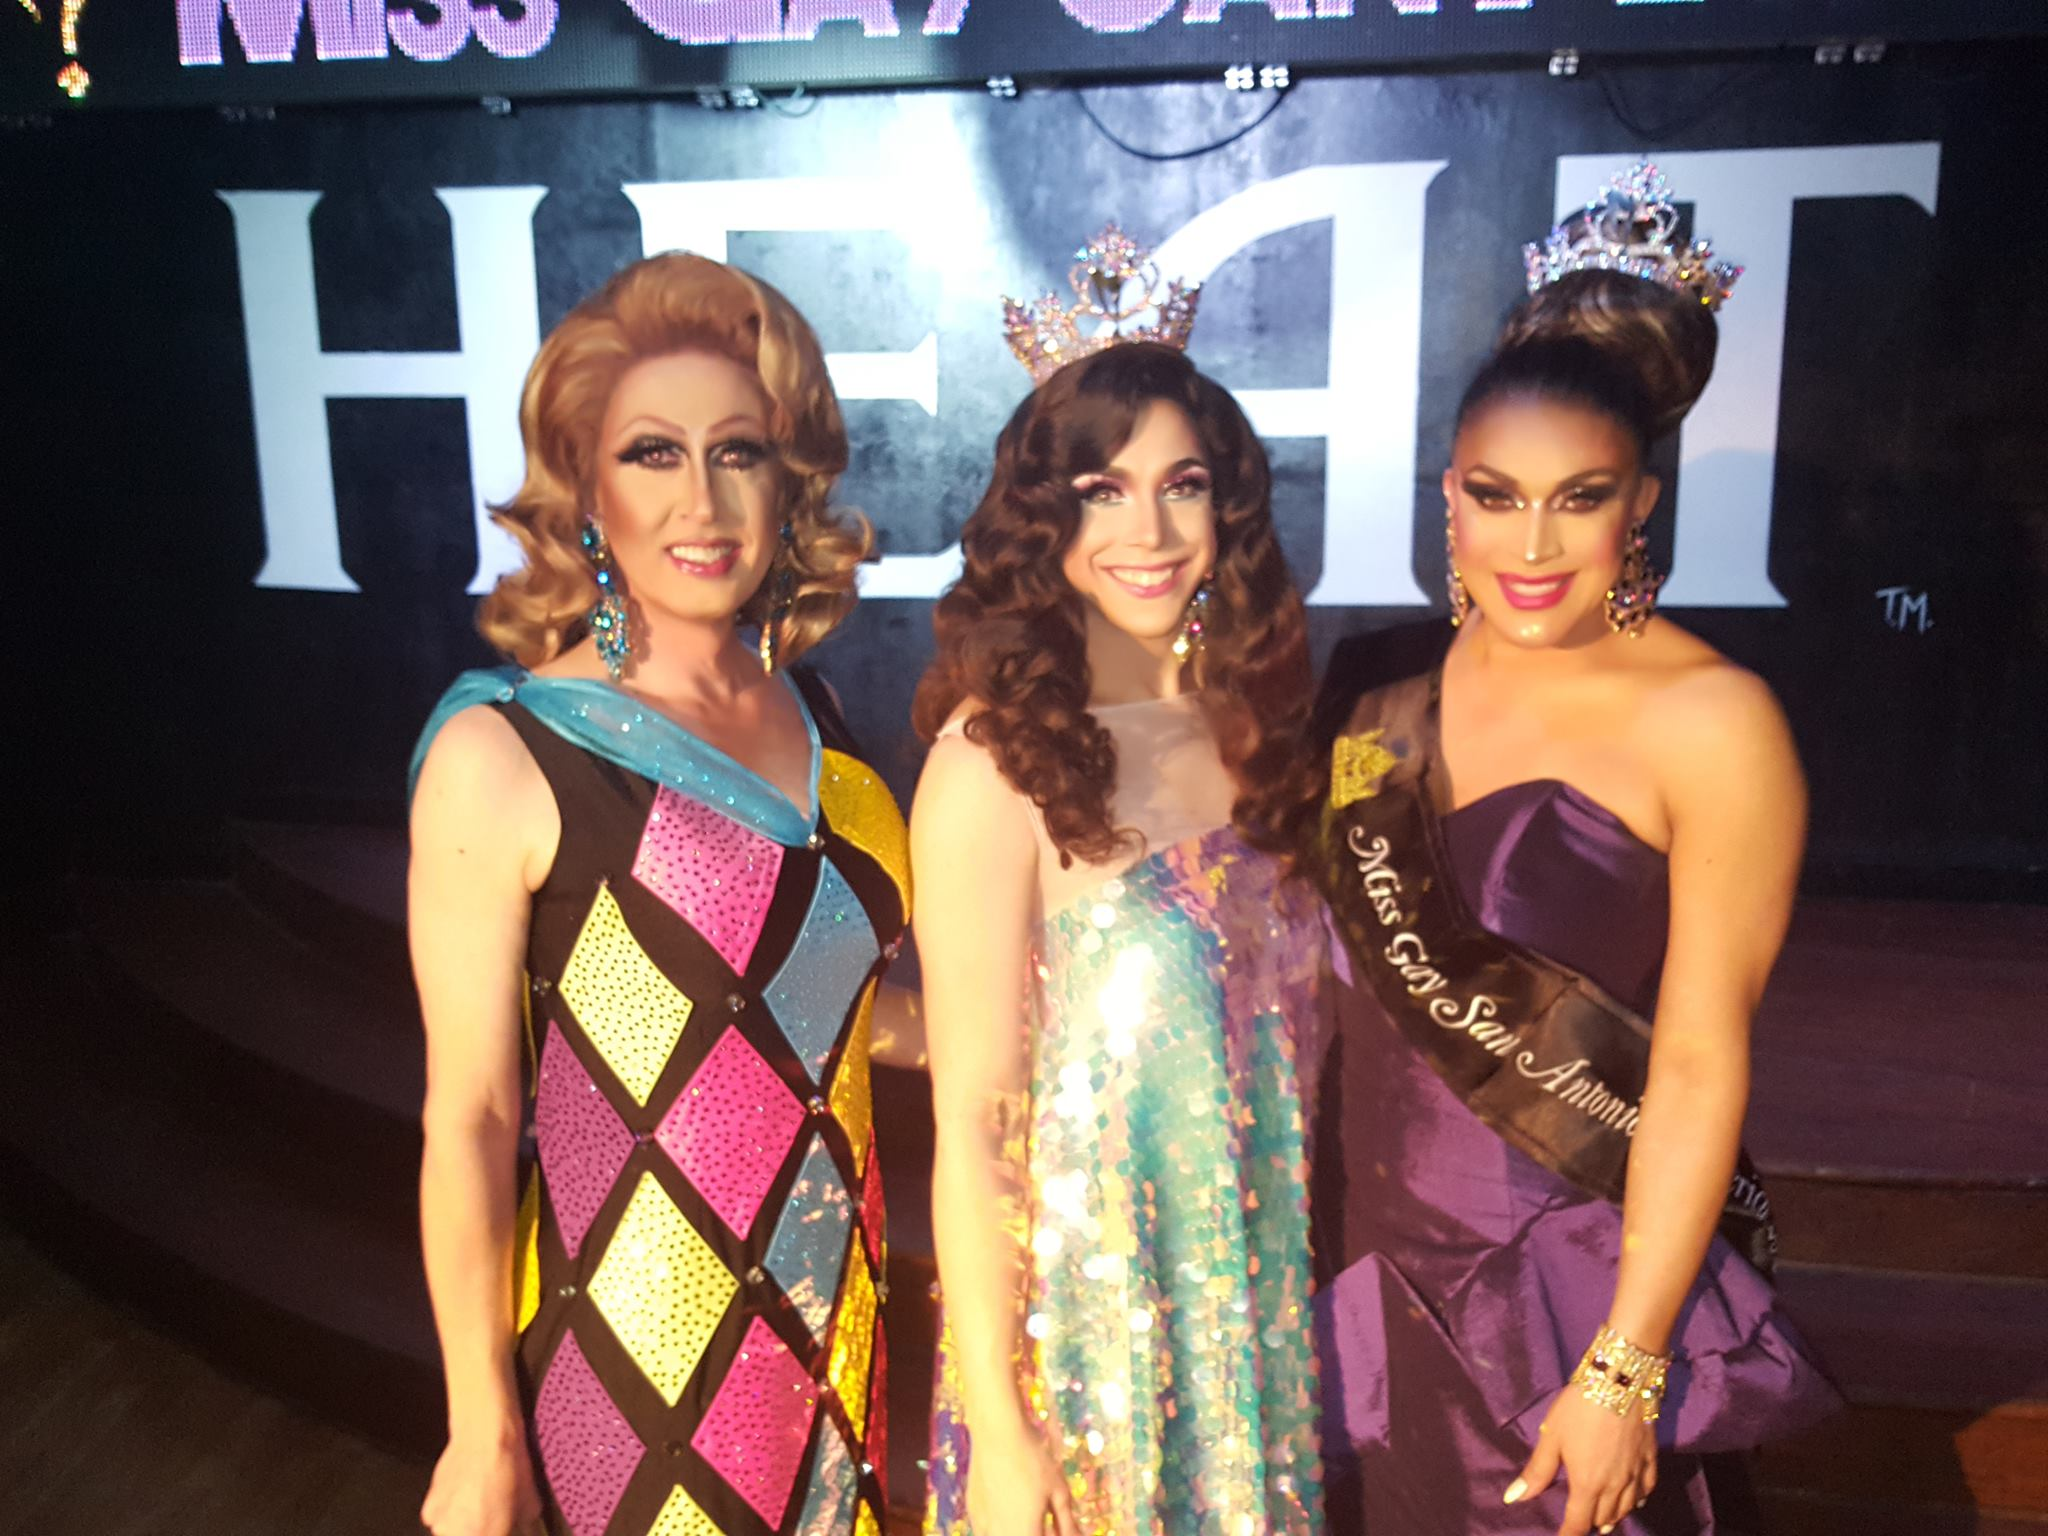 Stephanie Fishe (1st Alternate to Miss Gay San Antonio America 2018), Violet S'Arbleu (Miss Gay Texas America 2017) and Toni Raven Andrews (Miss Gay San Antonio America 2018) at the Heat in San Antonio on the night of March 13th, 2018 at the Mr. and Miss Gay San Antonio America pageant.